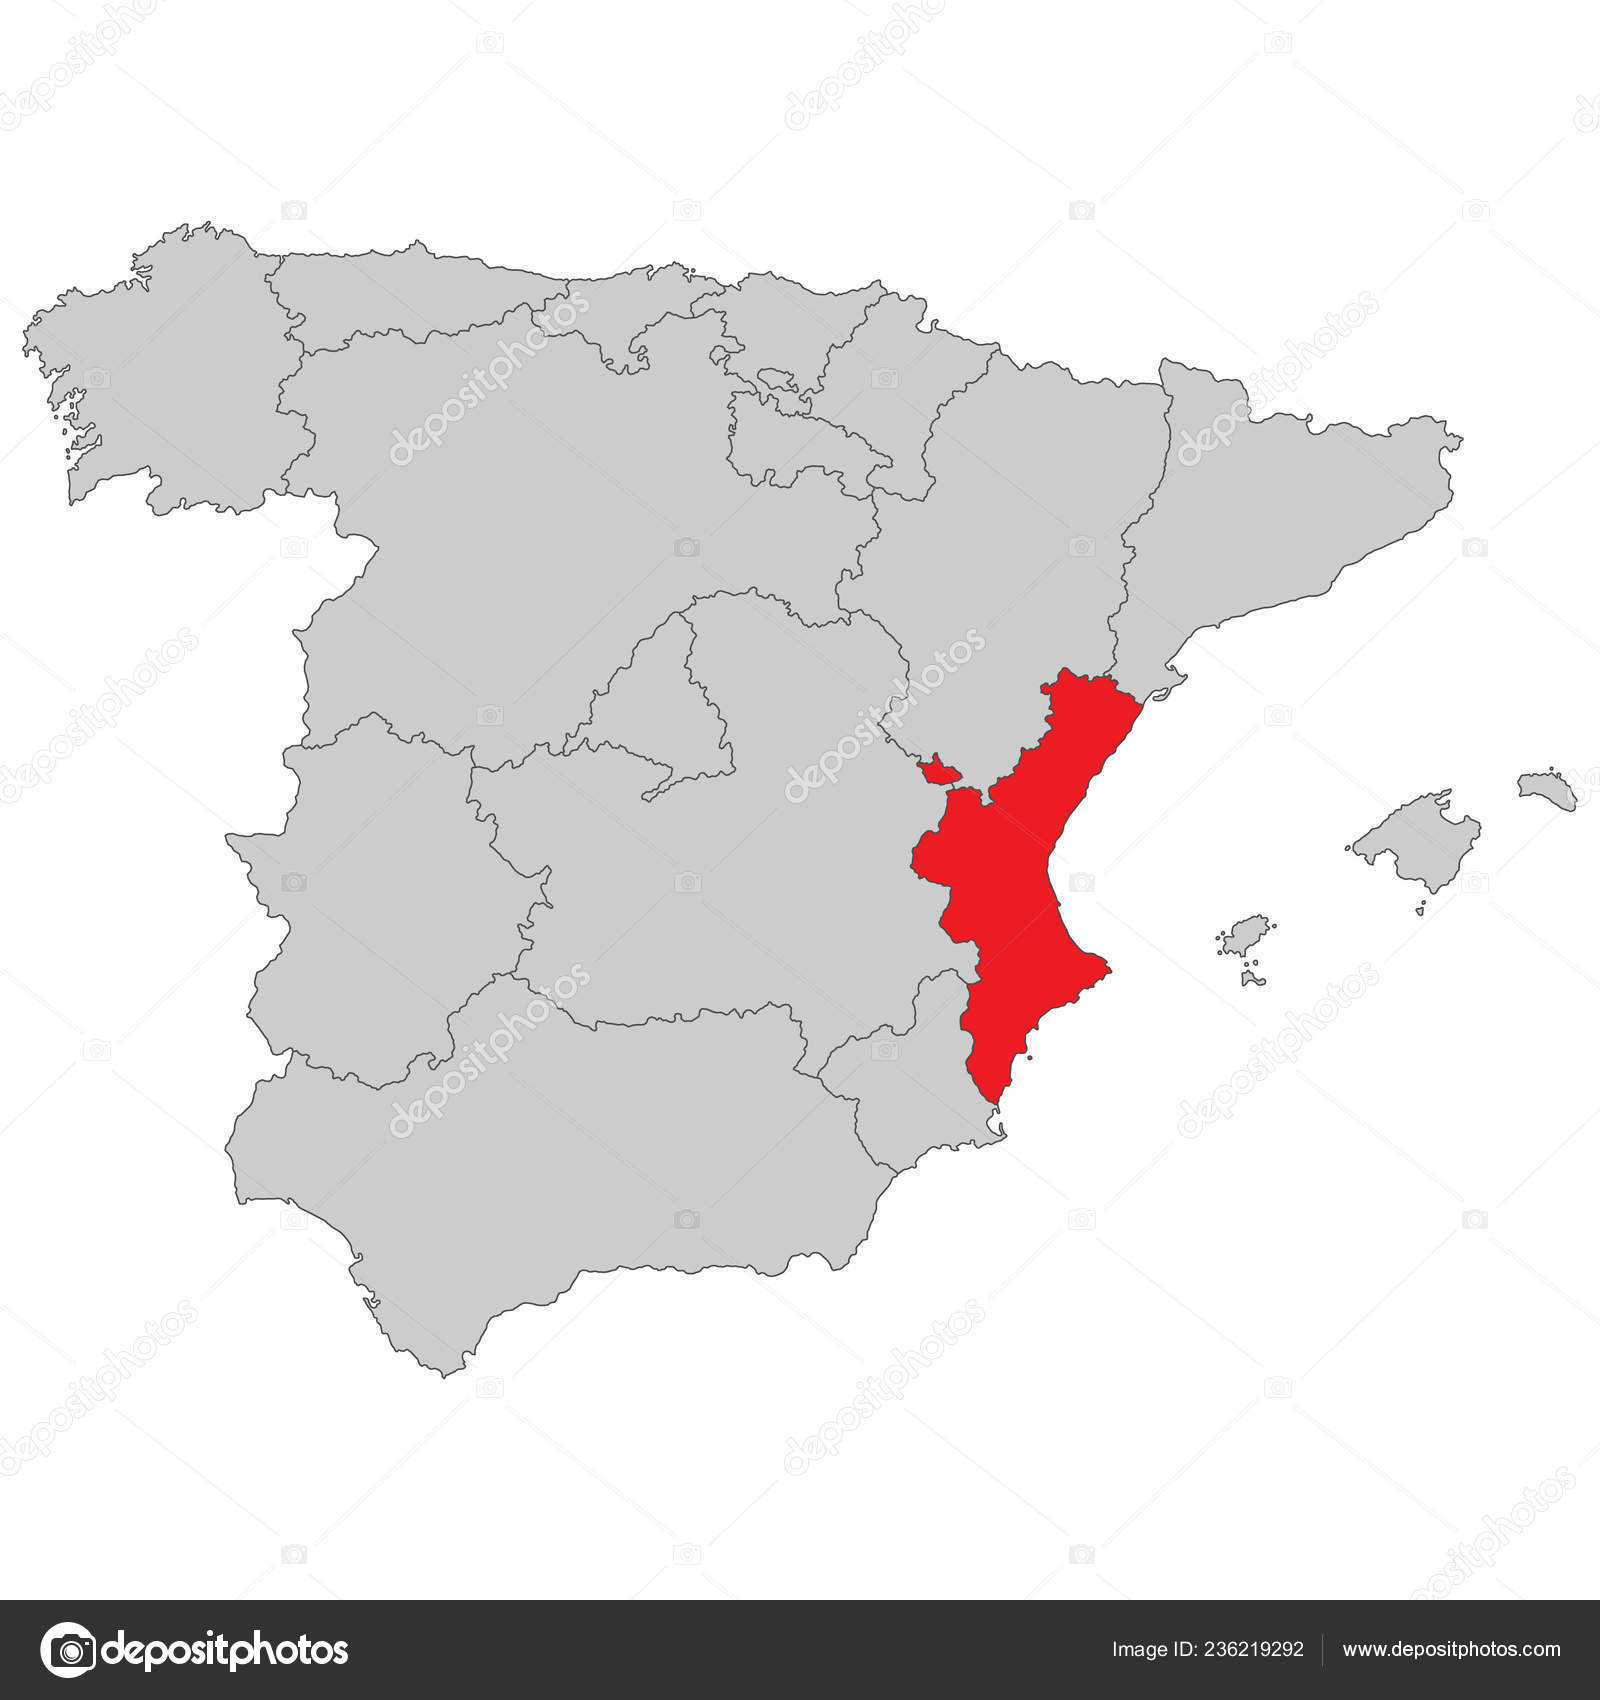 Valencia Map Of Spain.Spain Map Spain Valencia High Detailed Stock Vector C Ii Graphics